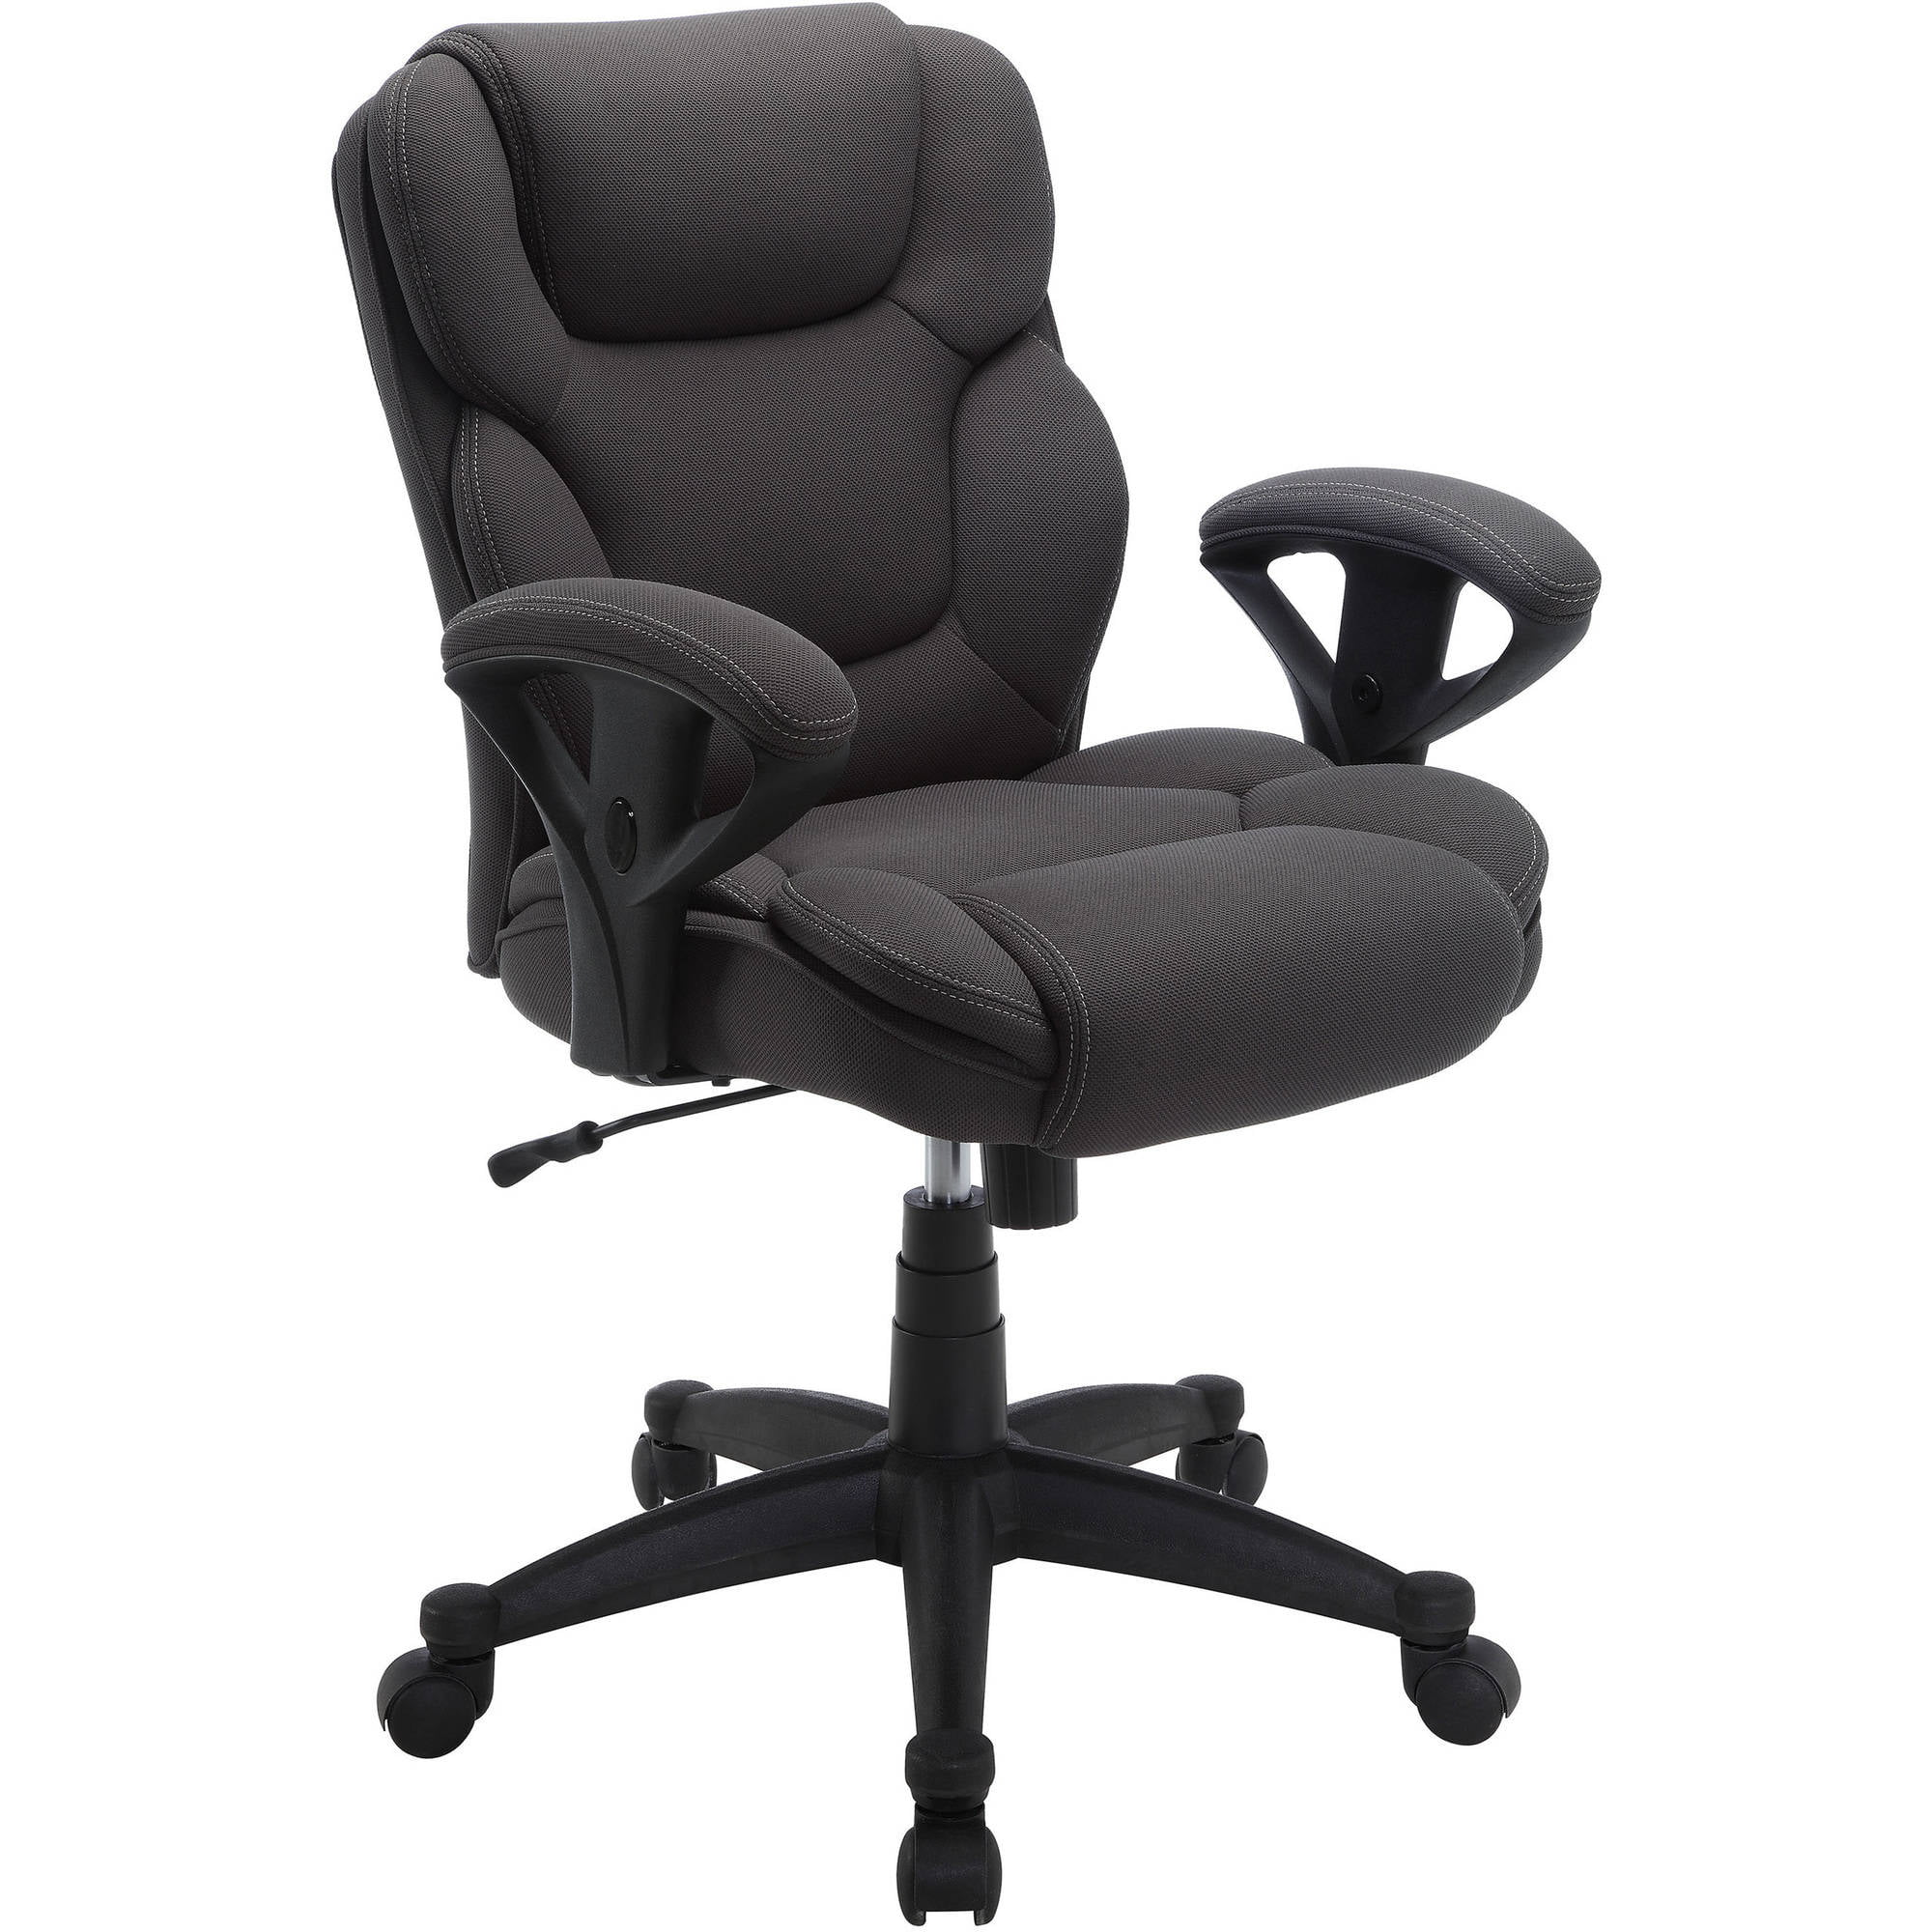 Work Chair Serta Mesh Fabric Swivel Manager Office Chair Available In Gray Fabric And Supports Up To 300 Lbs